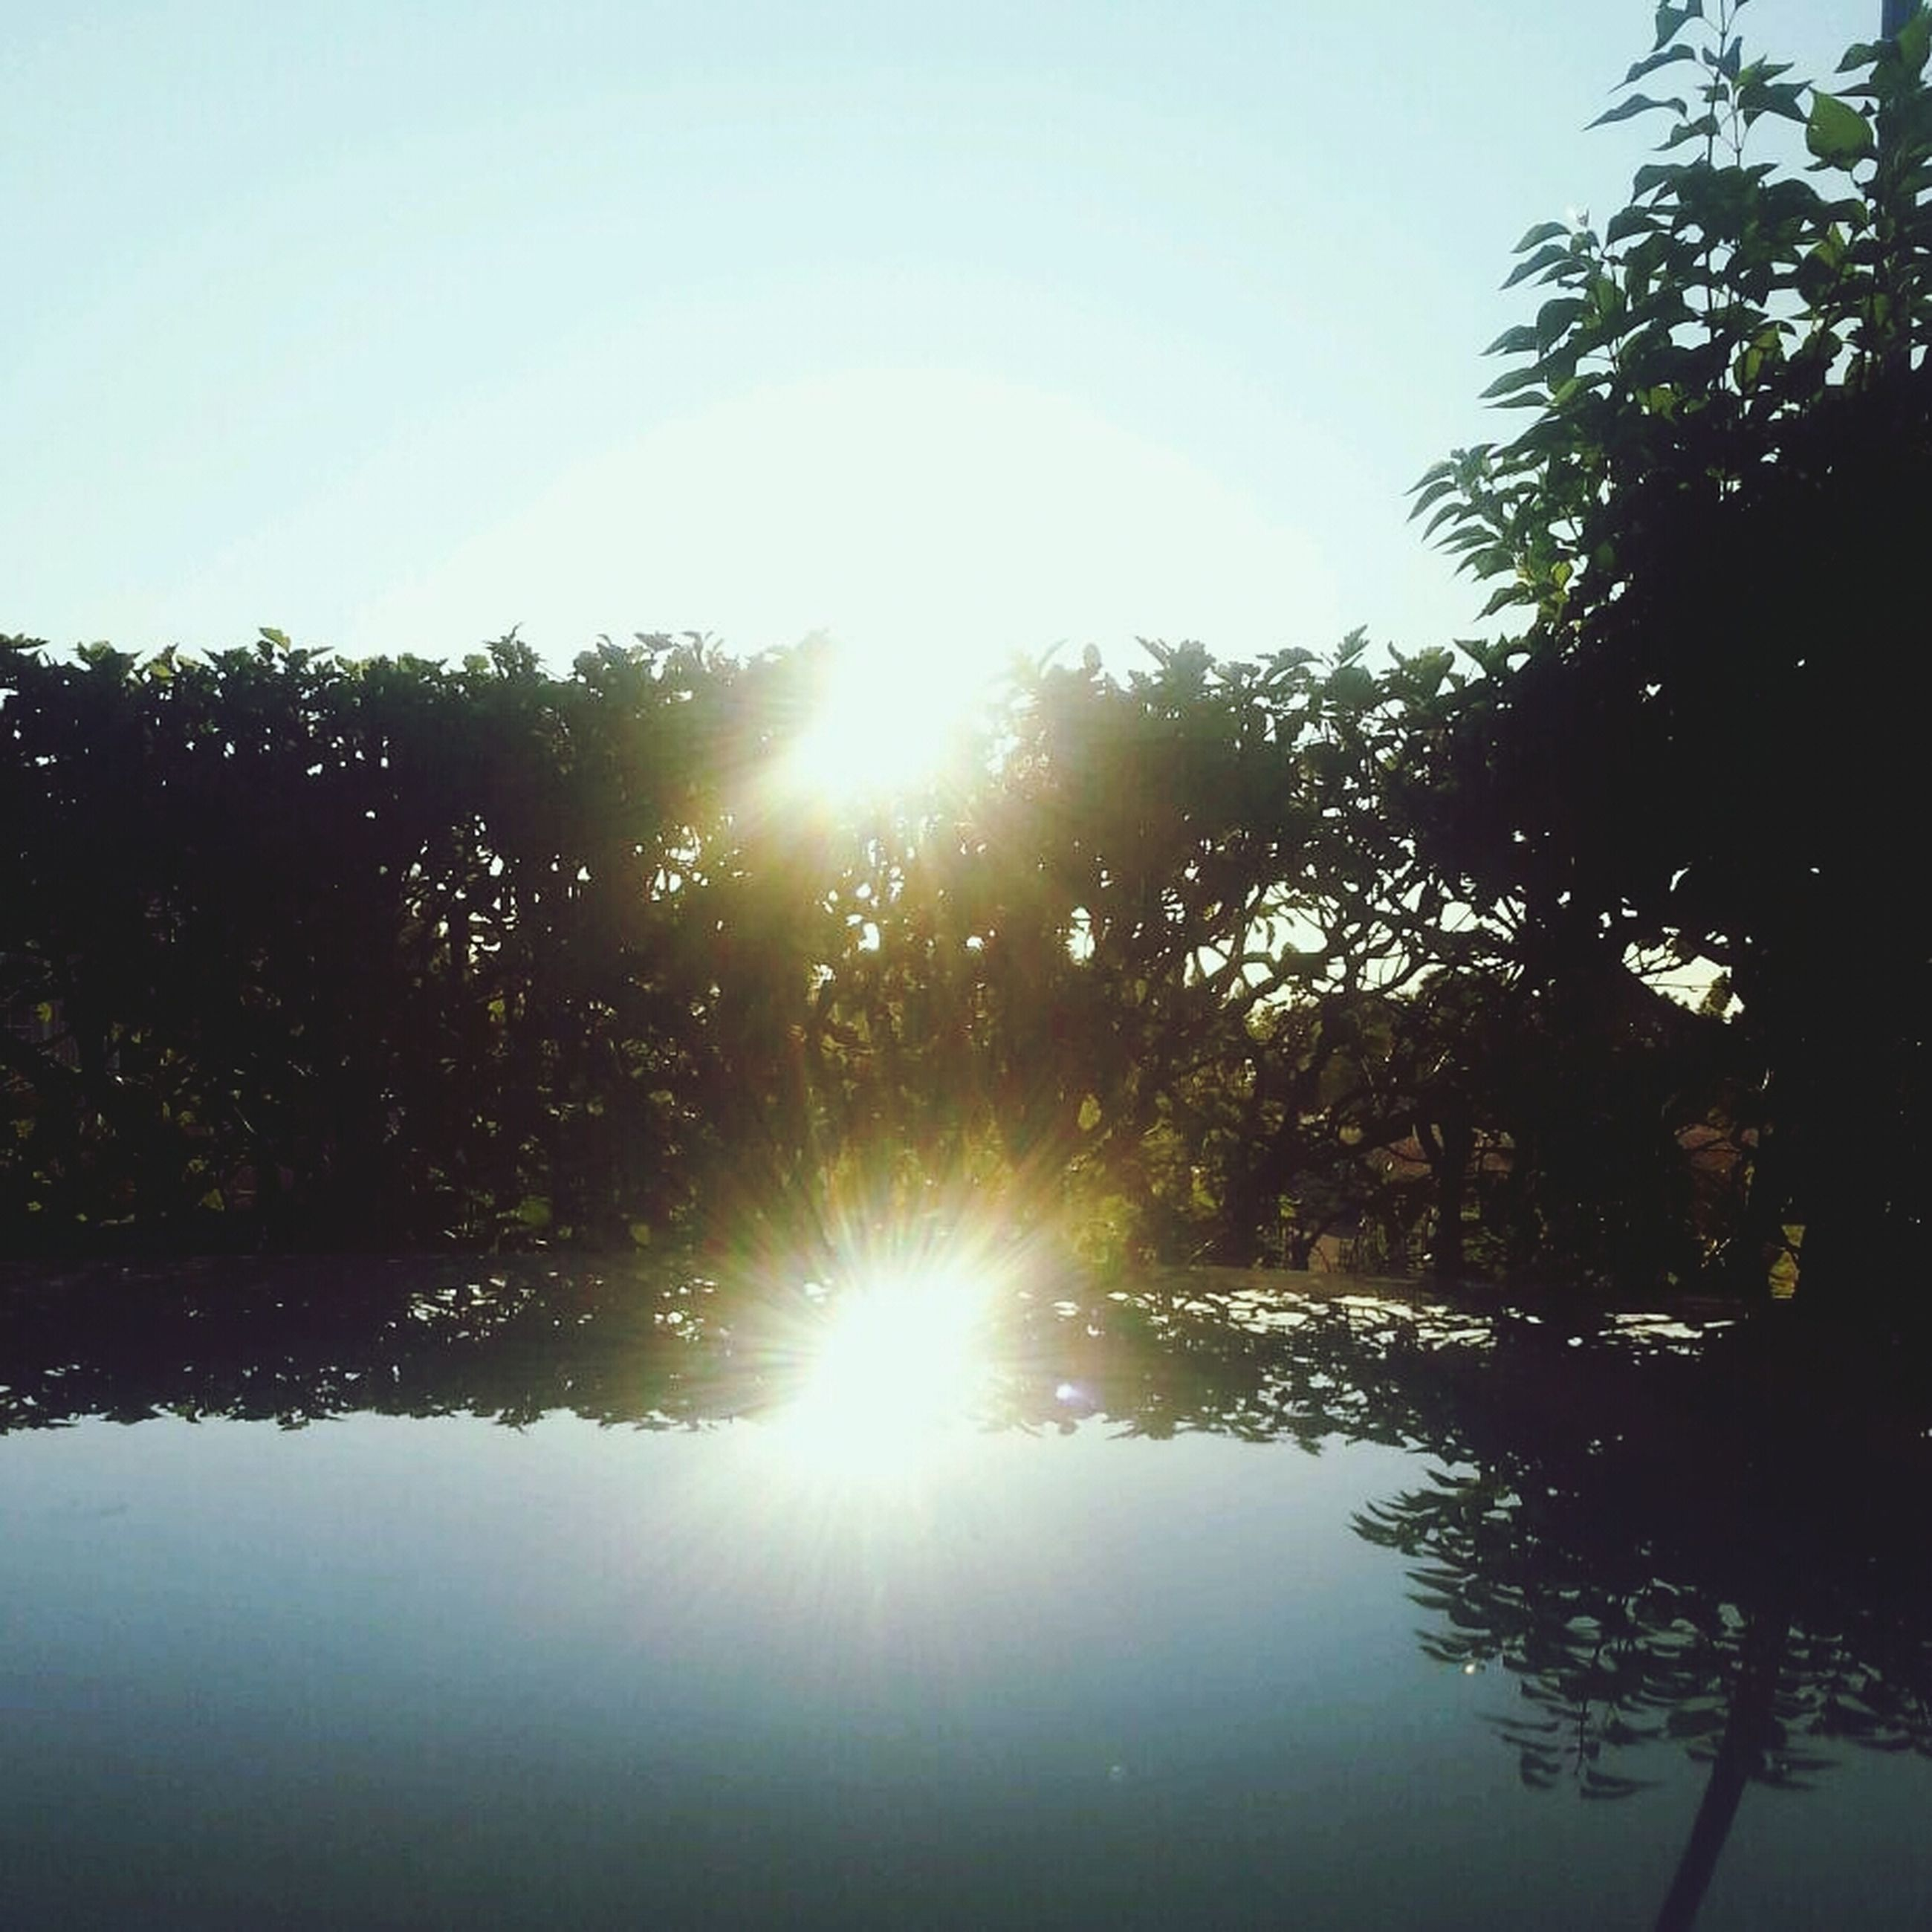 sun, sunbeam, sunlight, tree, lens flare, tranquility, clear sky, tranquil scene, beauty in nature, scenics, nature, reflection, bright, water, sunny, growth, sky, idyllic, shiny, lake